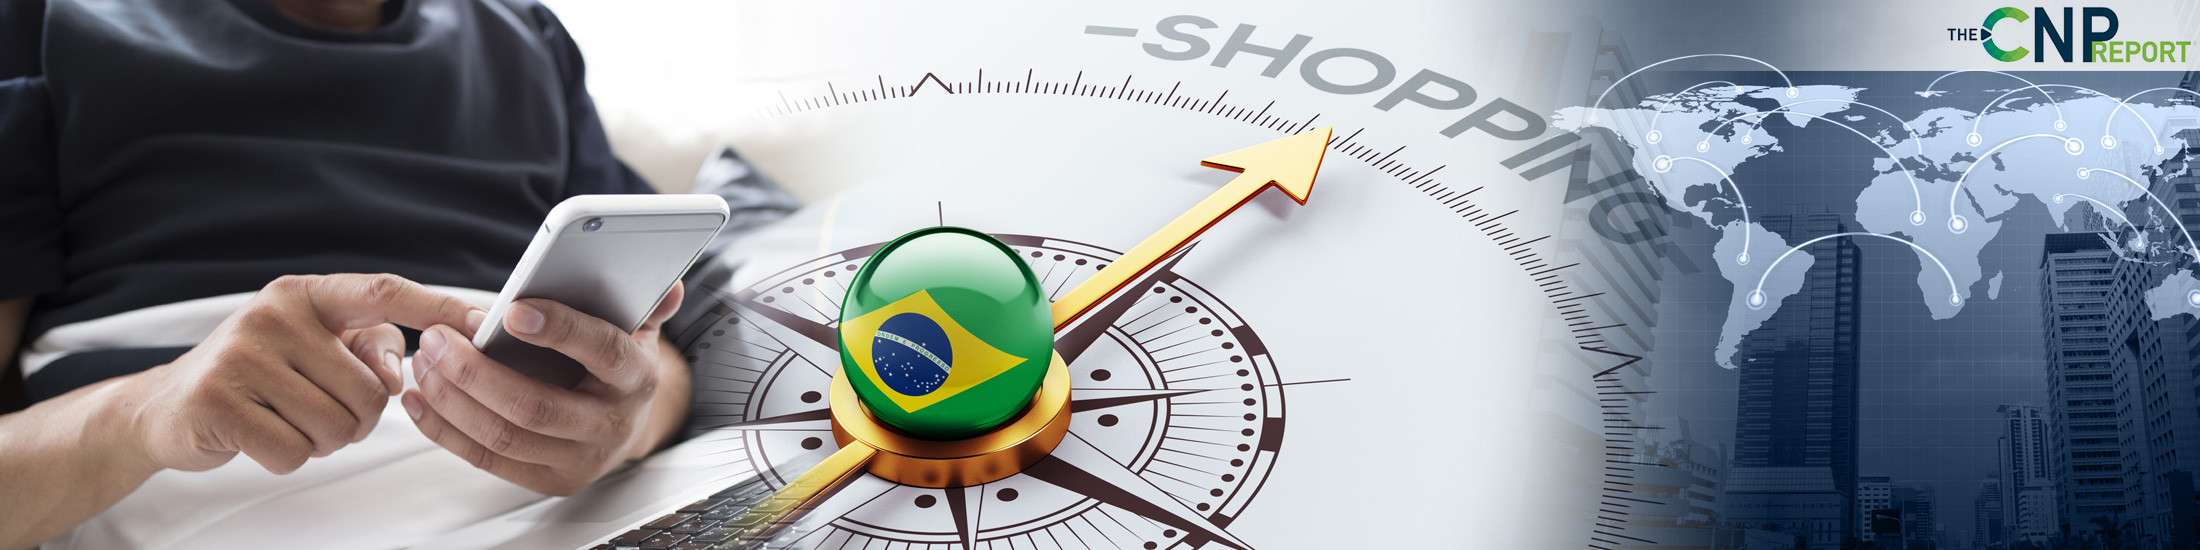 62% of Brazilians Use Smartphone to Pay for Cross-Border E-com Purchases: Report